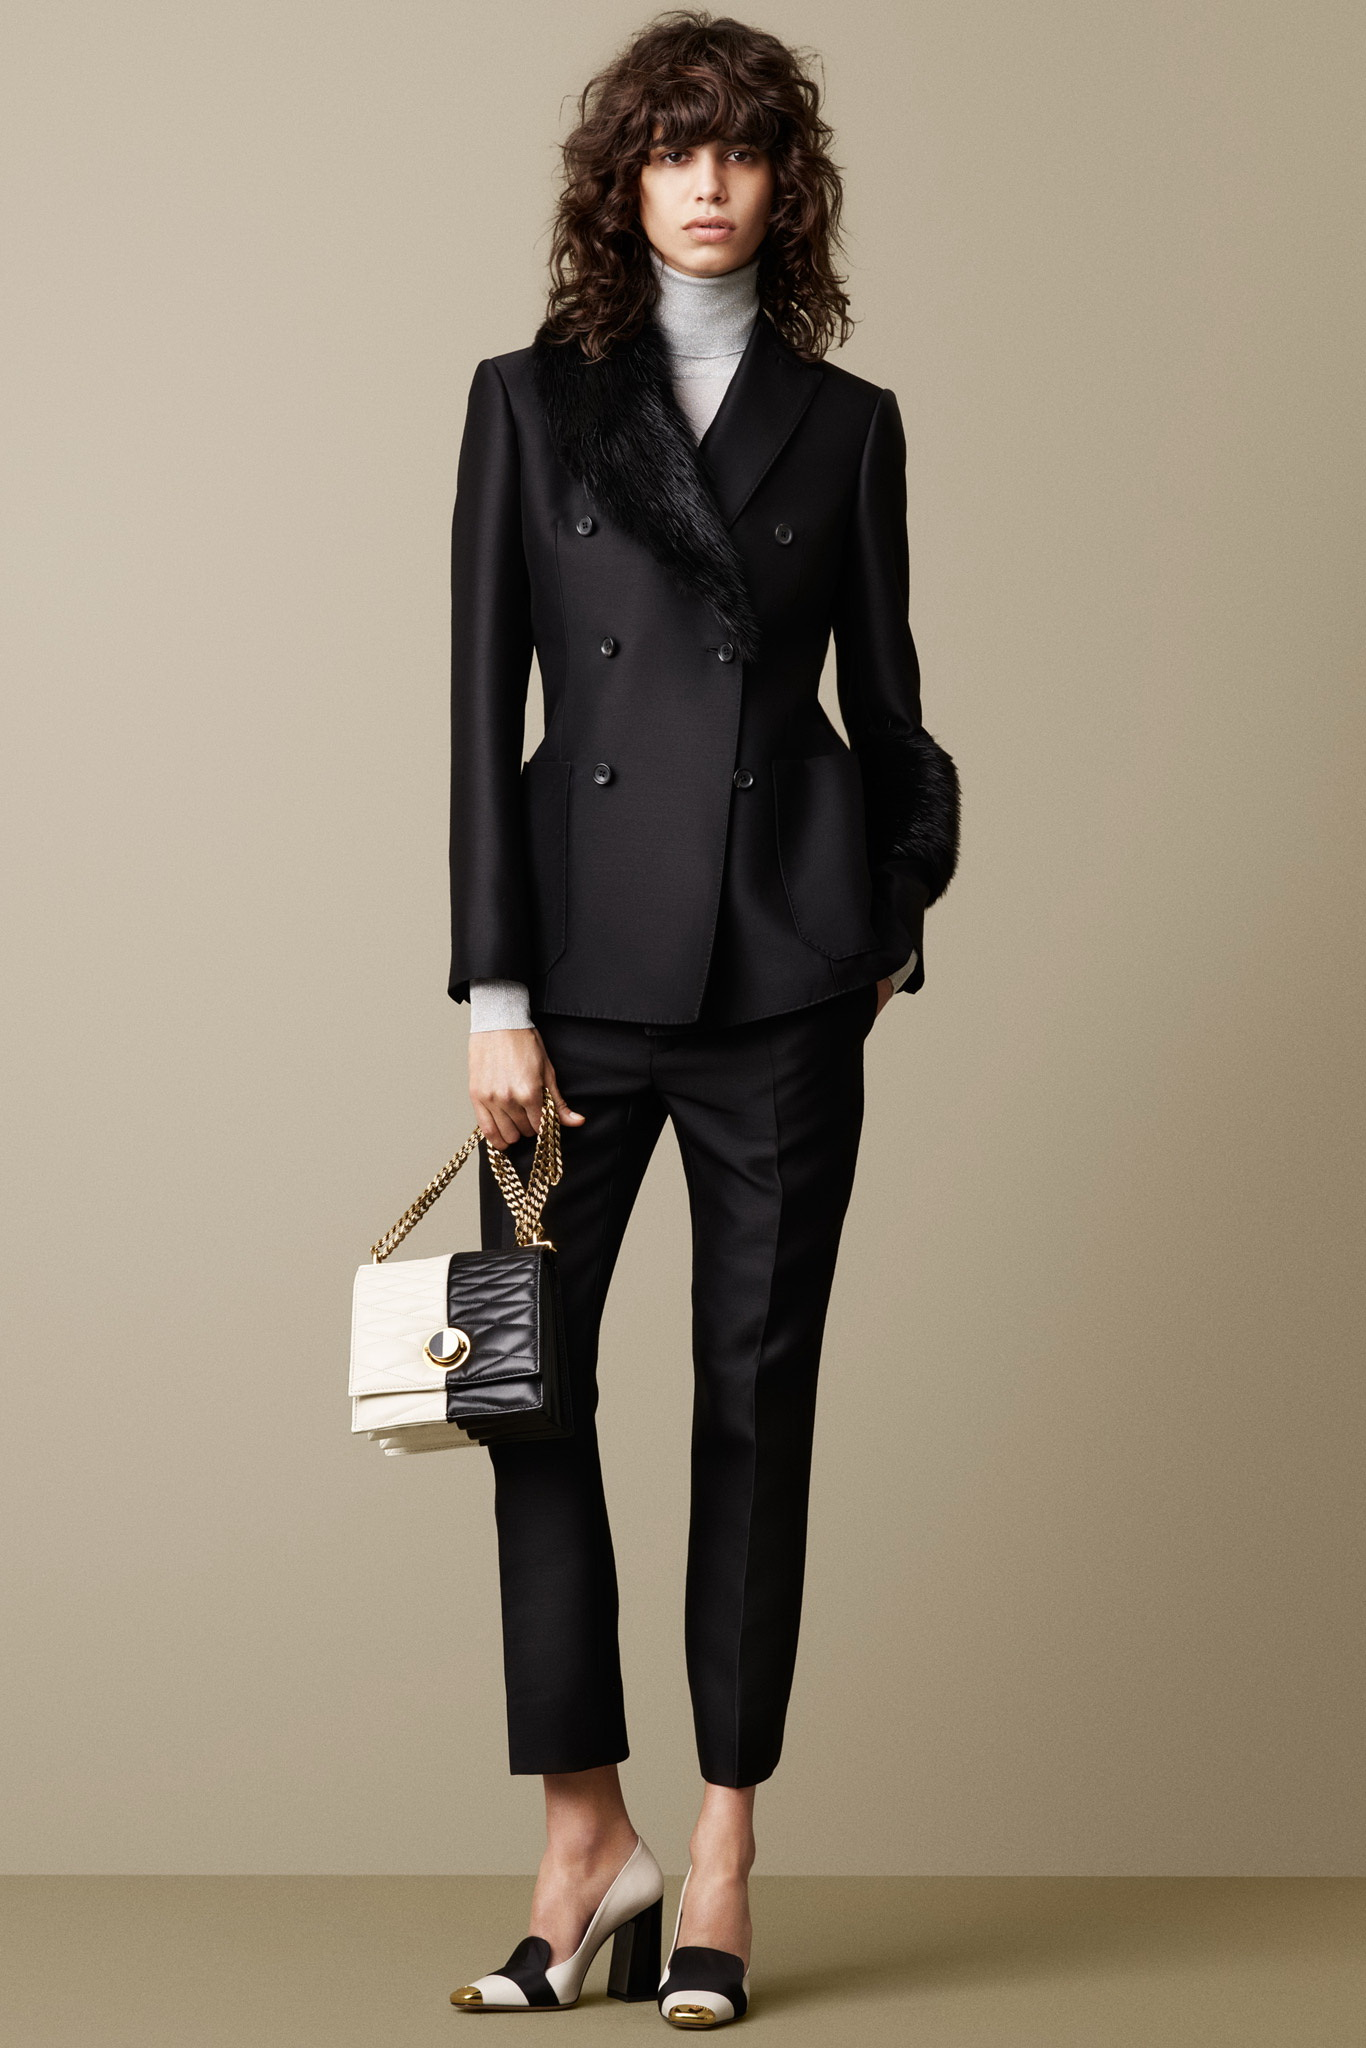 womens black pants suits photo - 2